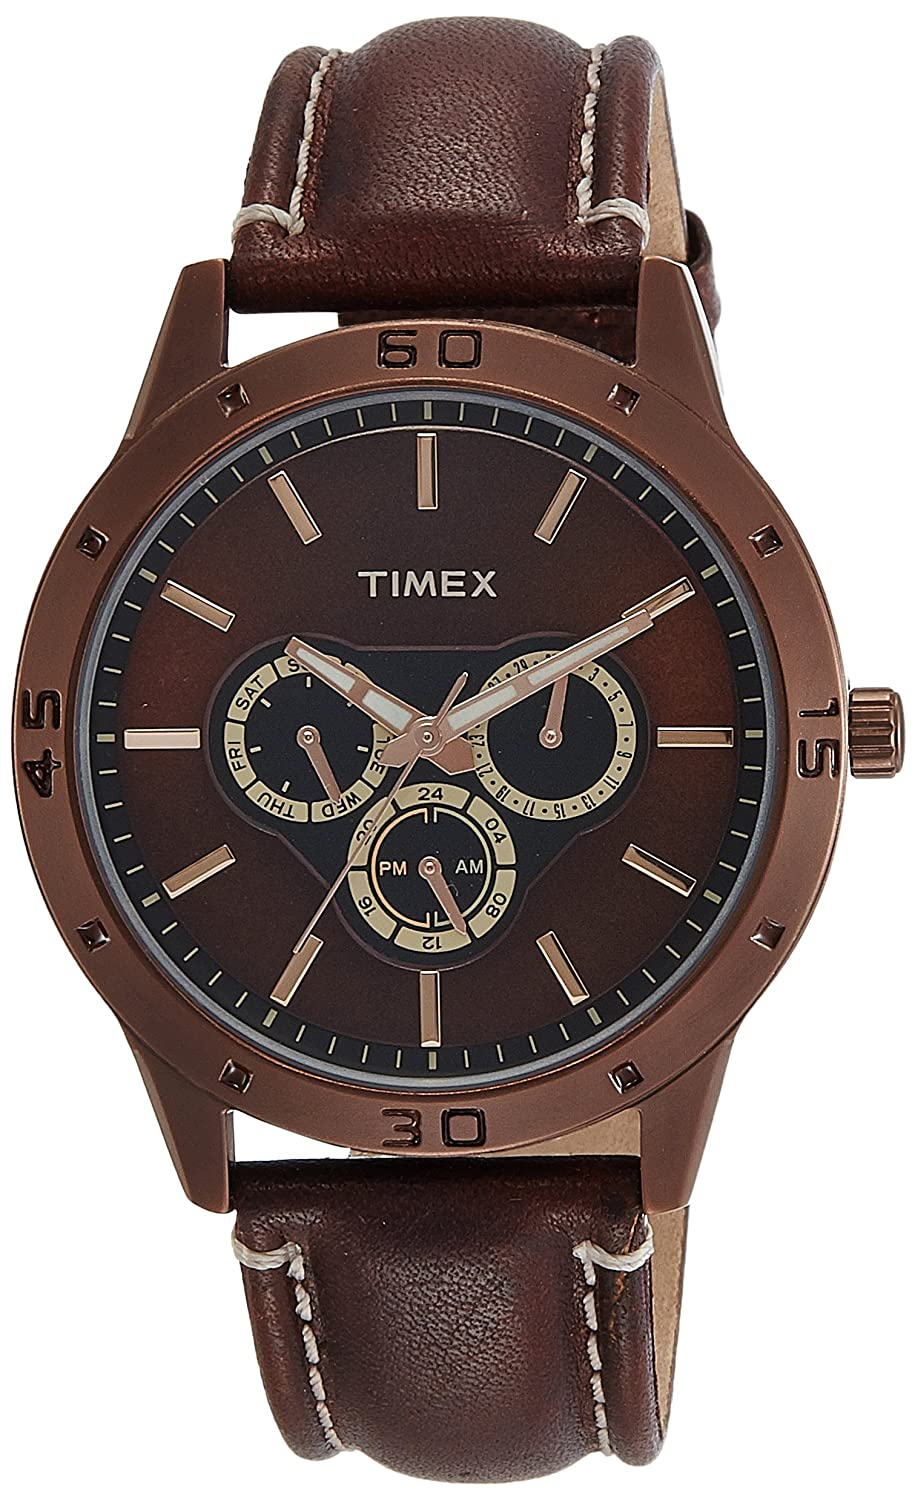 Timex Analog Brown Dial Best Mens Watches Under 5000 in India to buy in 2019 - Reviews & Buyers Guide